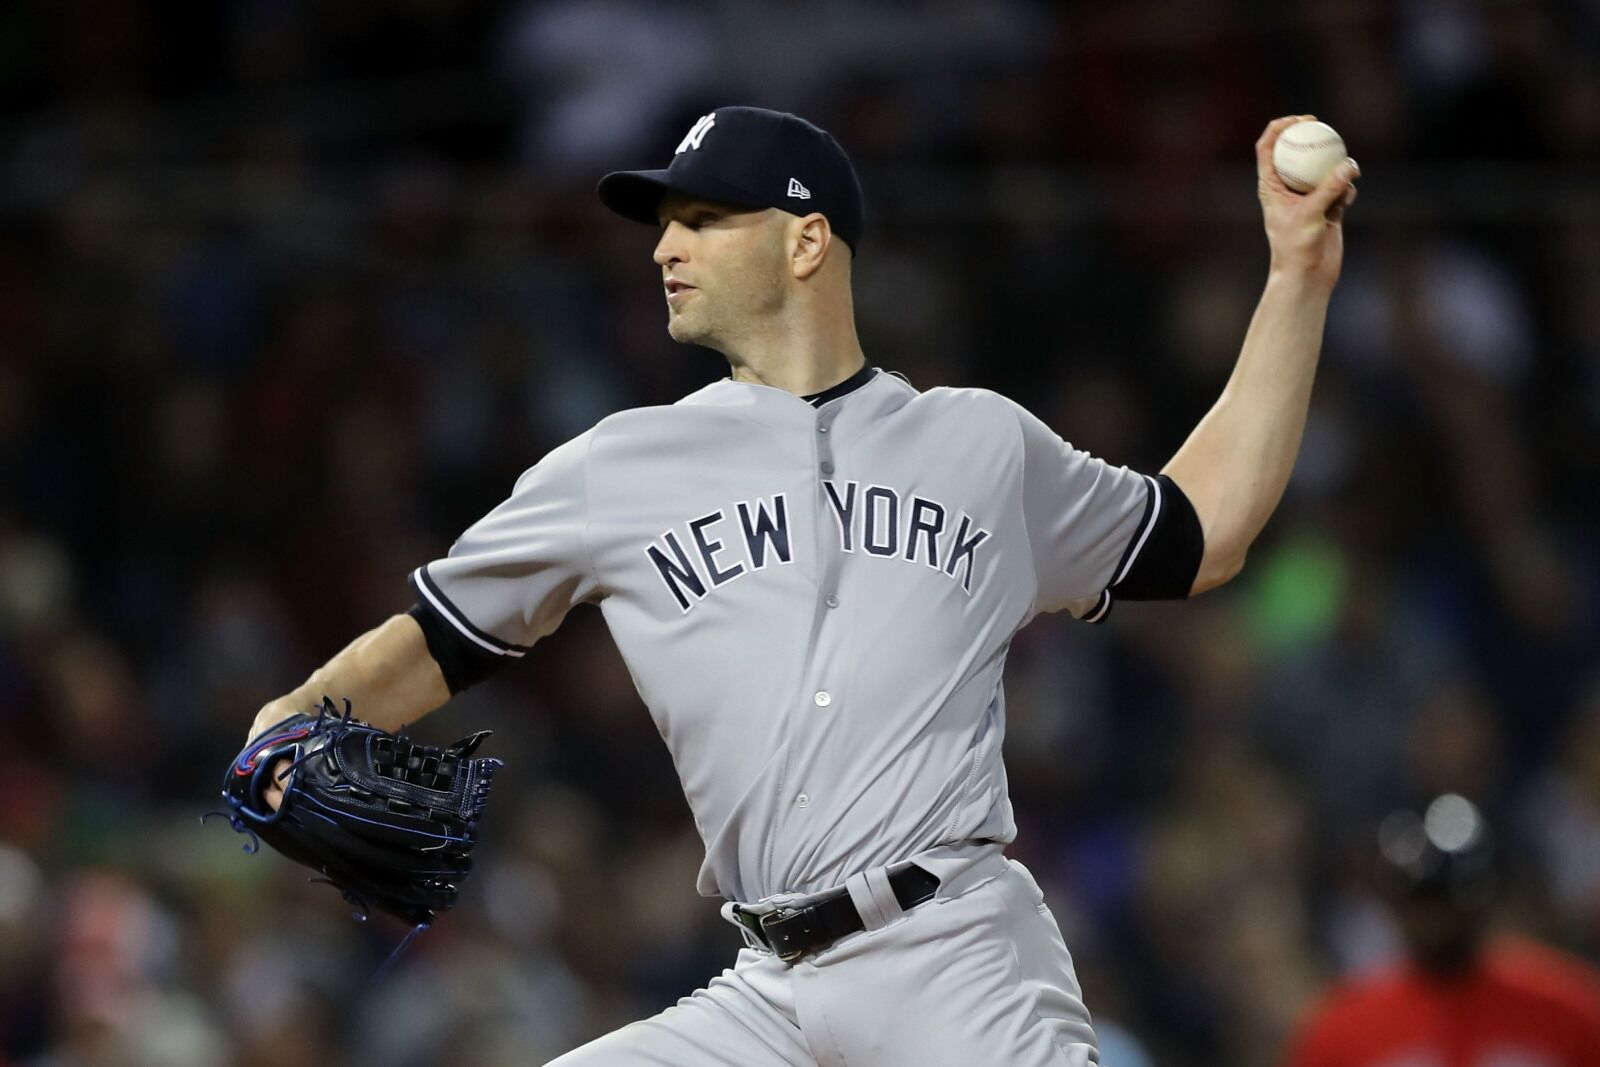 Phillies free agency target profile: Starting pitcher J.A. Happ